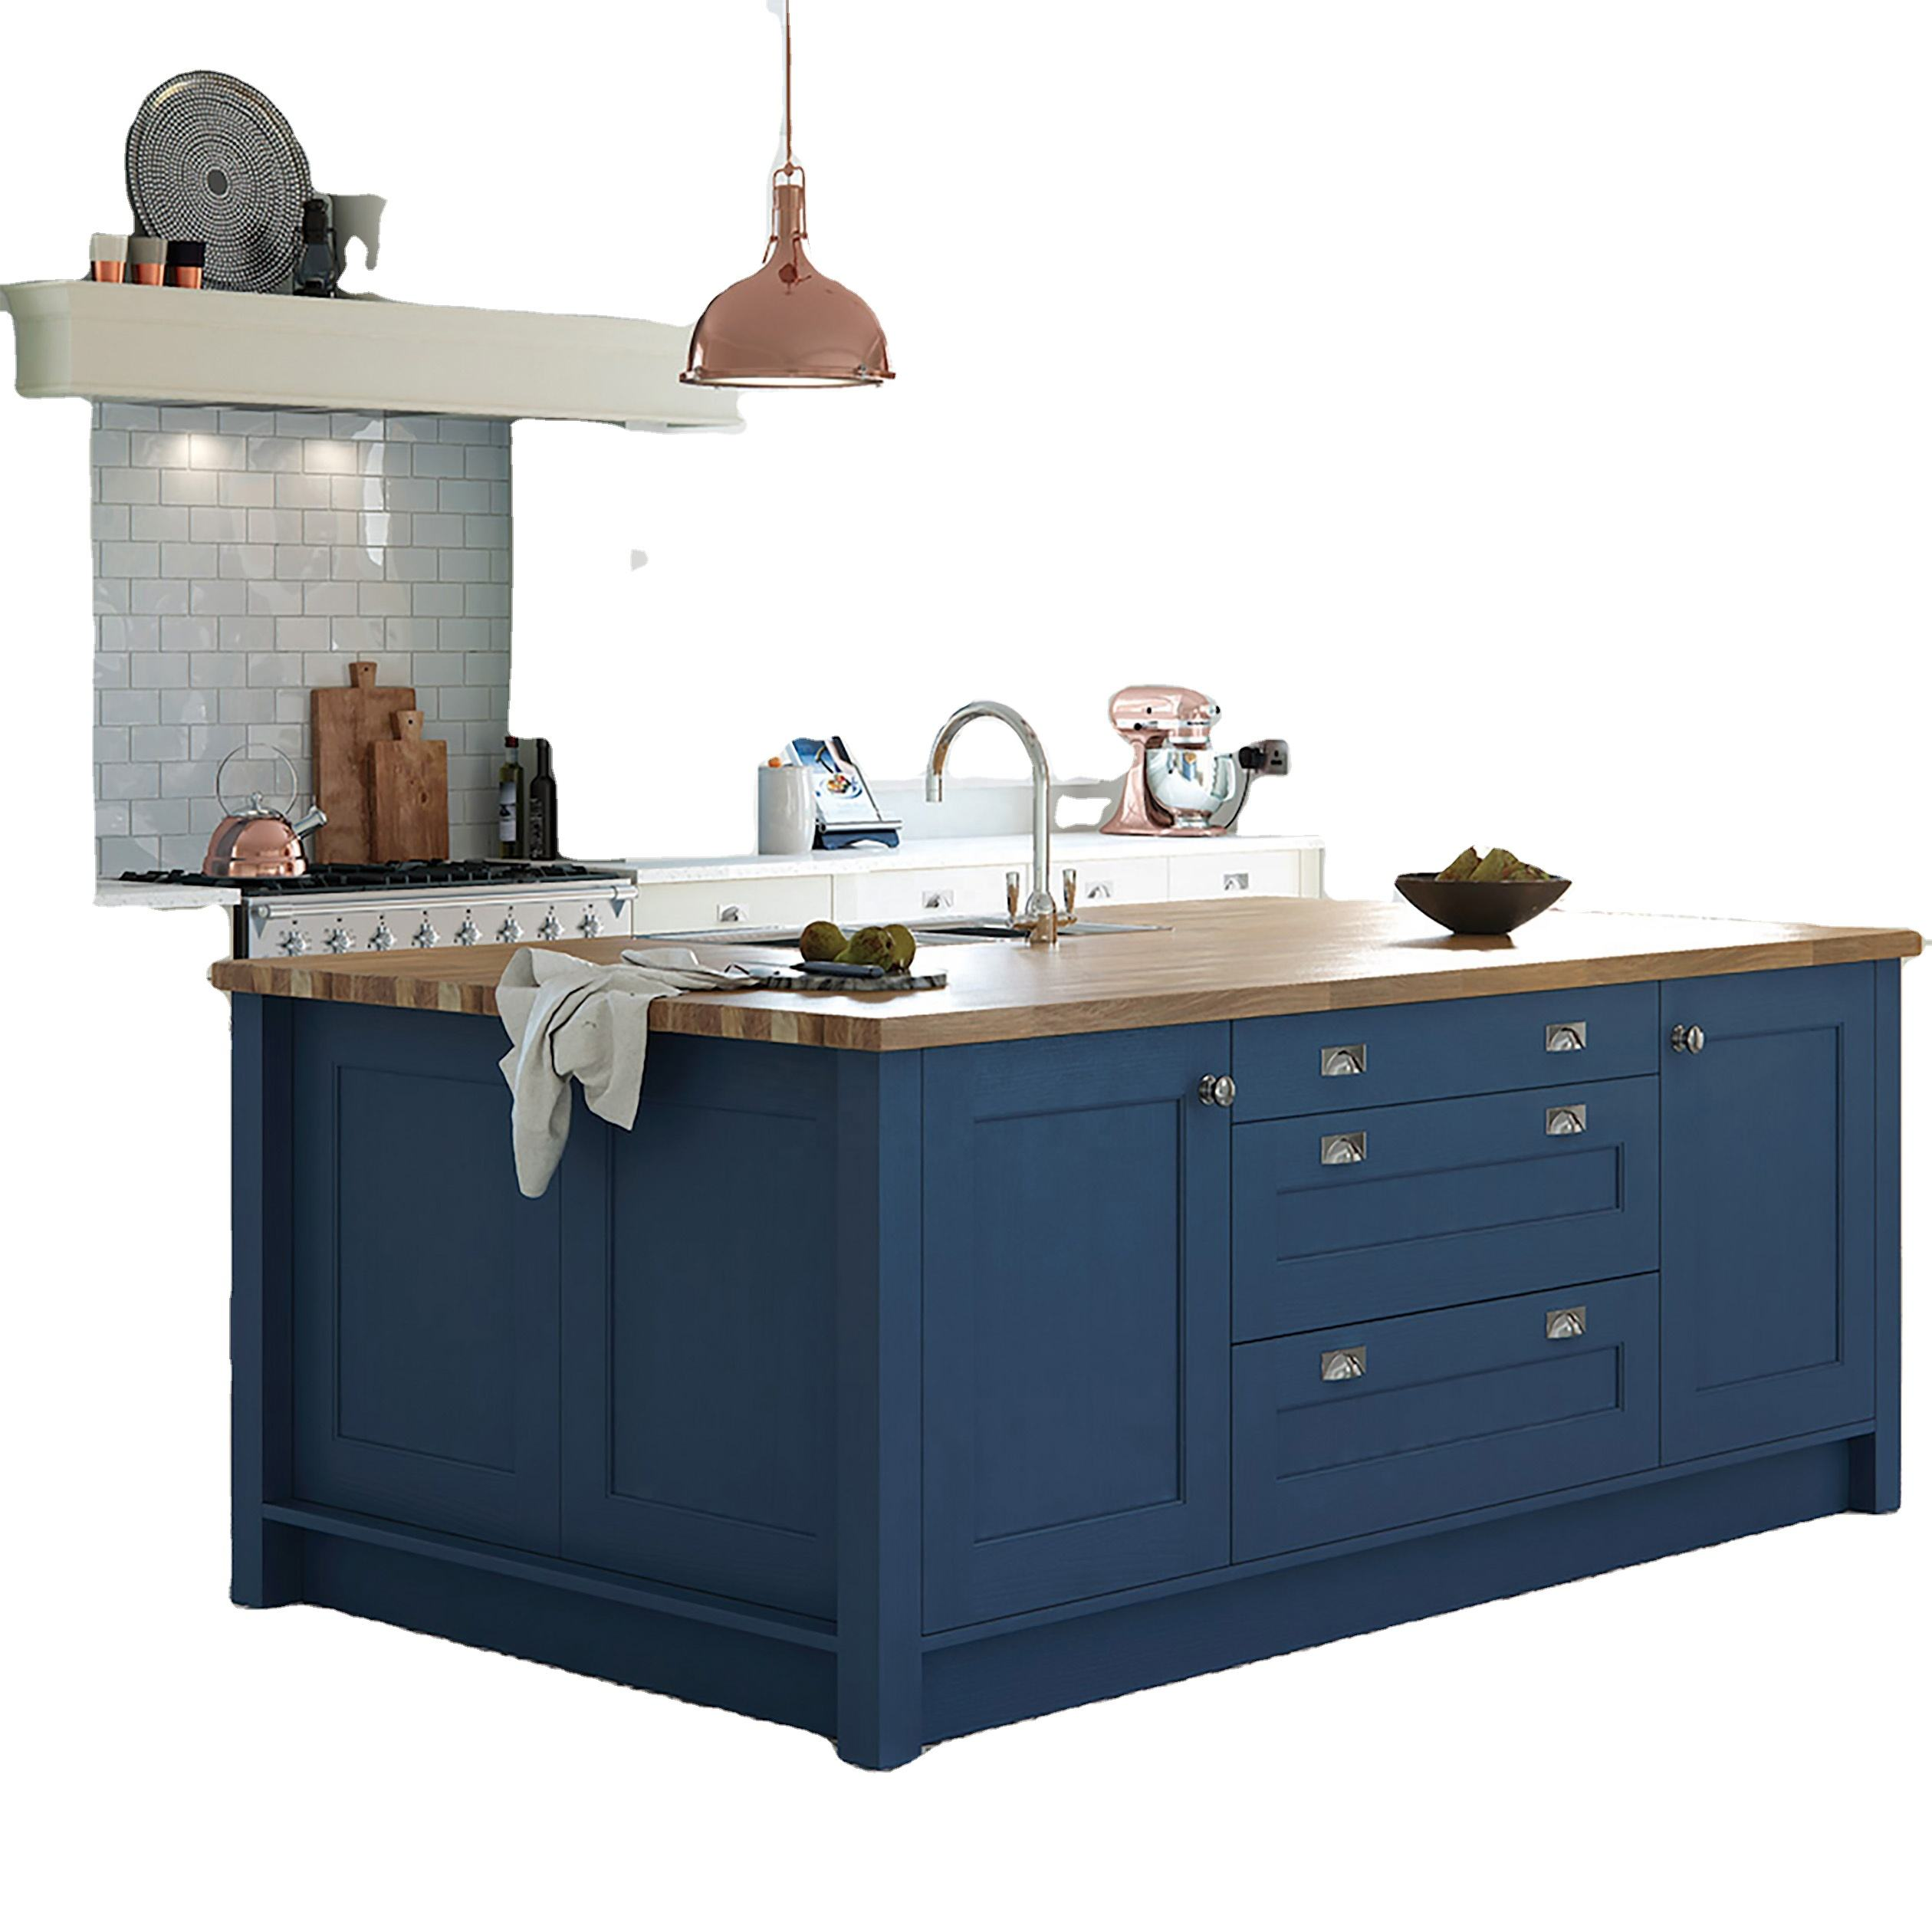 Hot Selling Modular Cupboards Blue Kitchen Cabinet Designs Solid Wood With Island